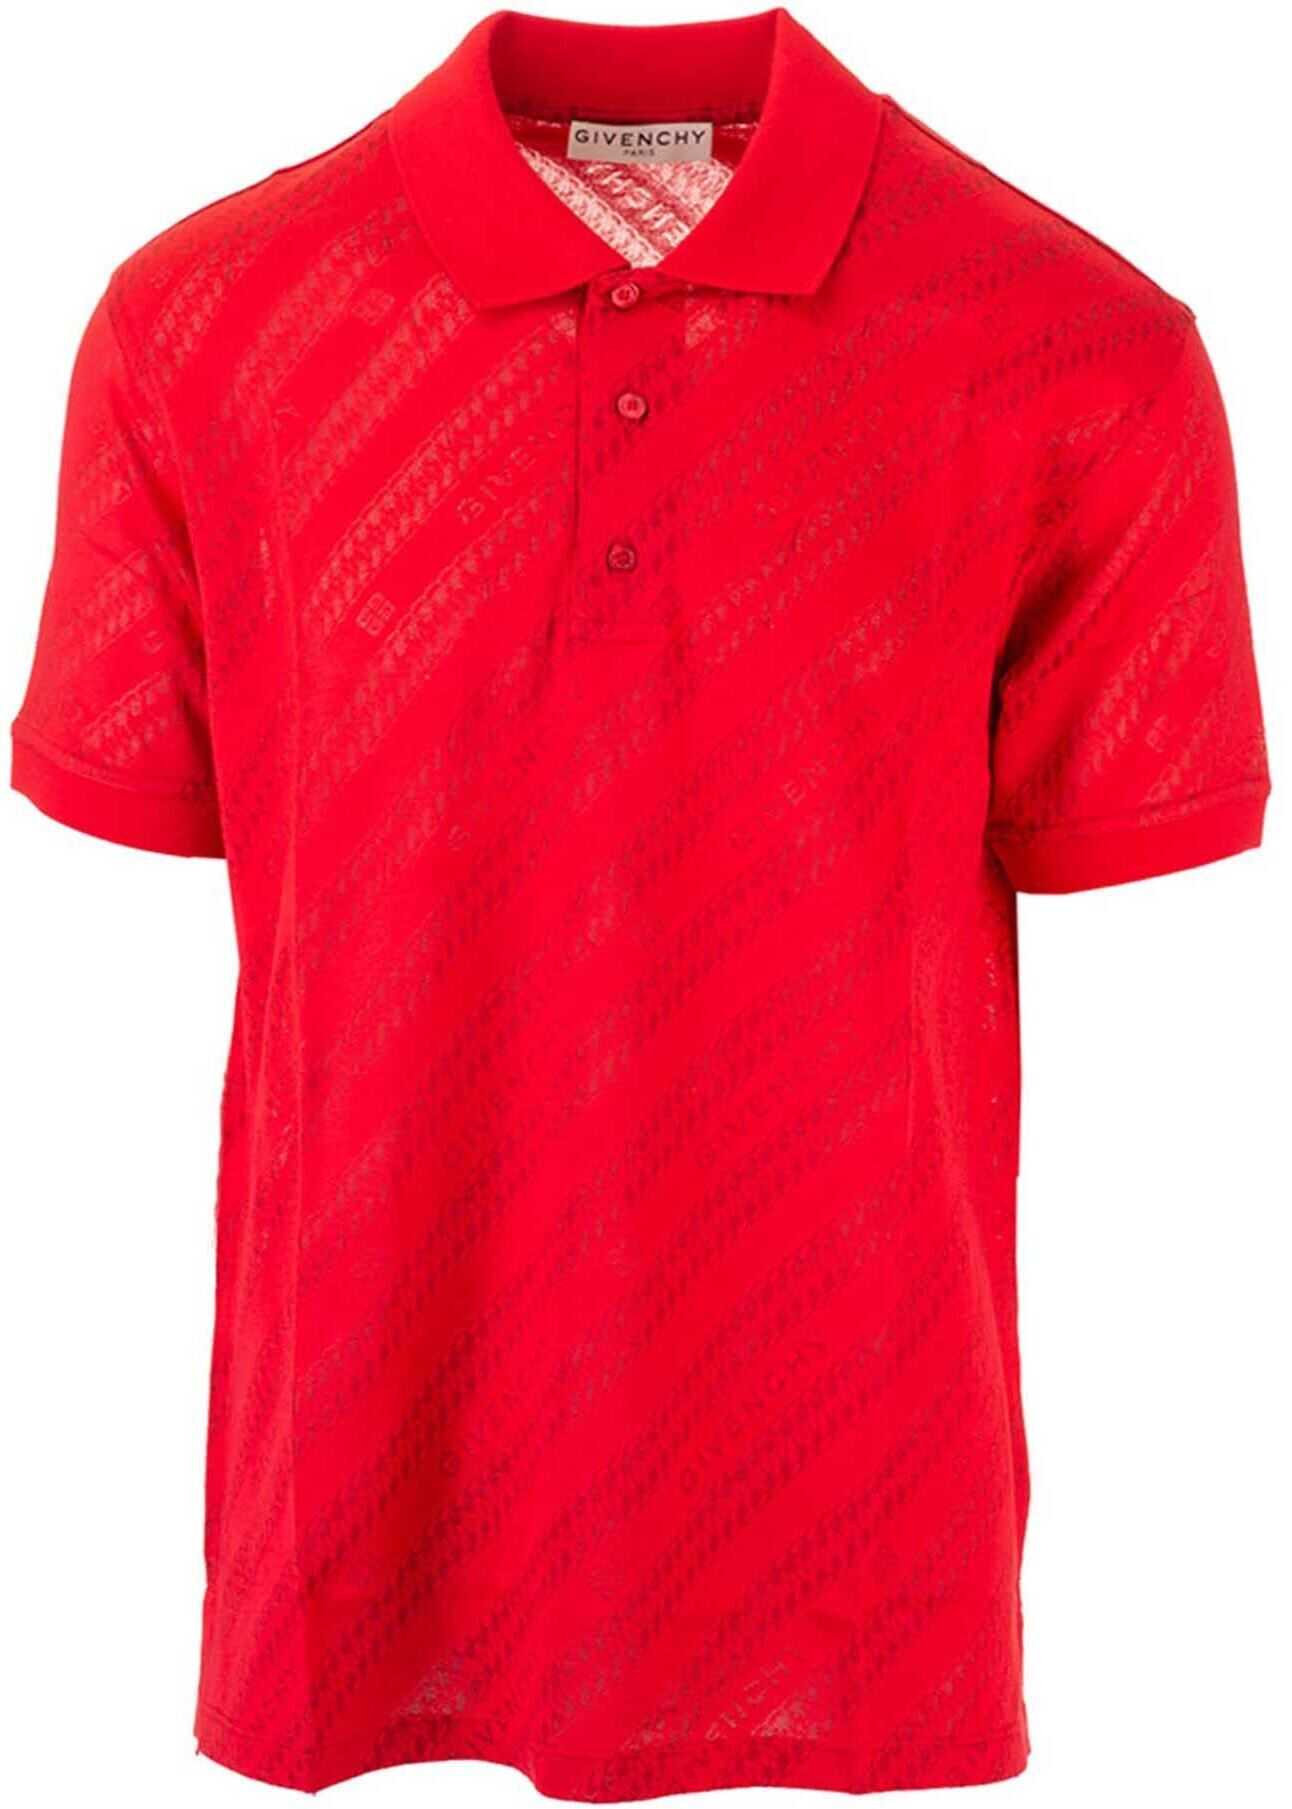 Givenchy Branded Polo Shirt In Red Red imagine